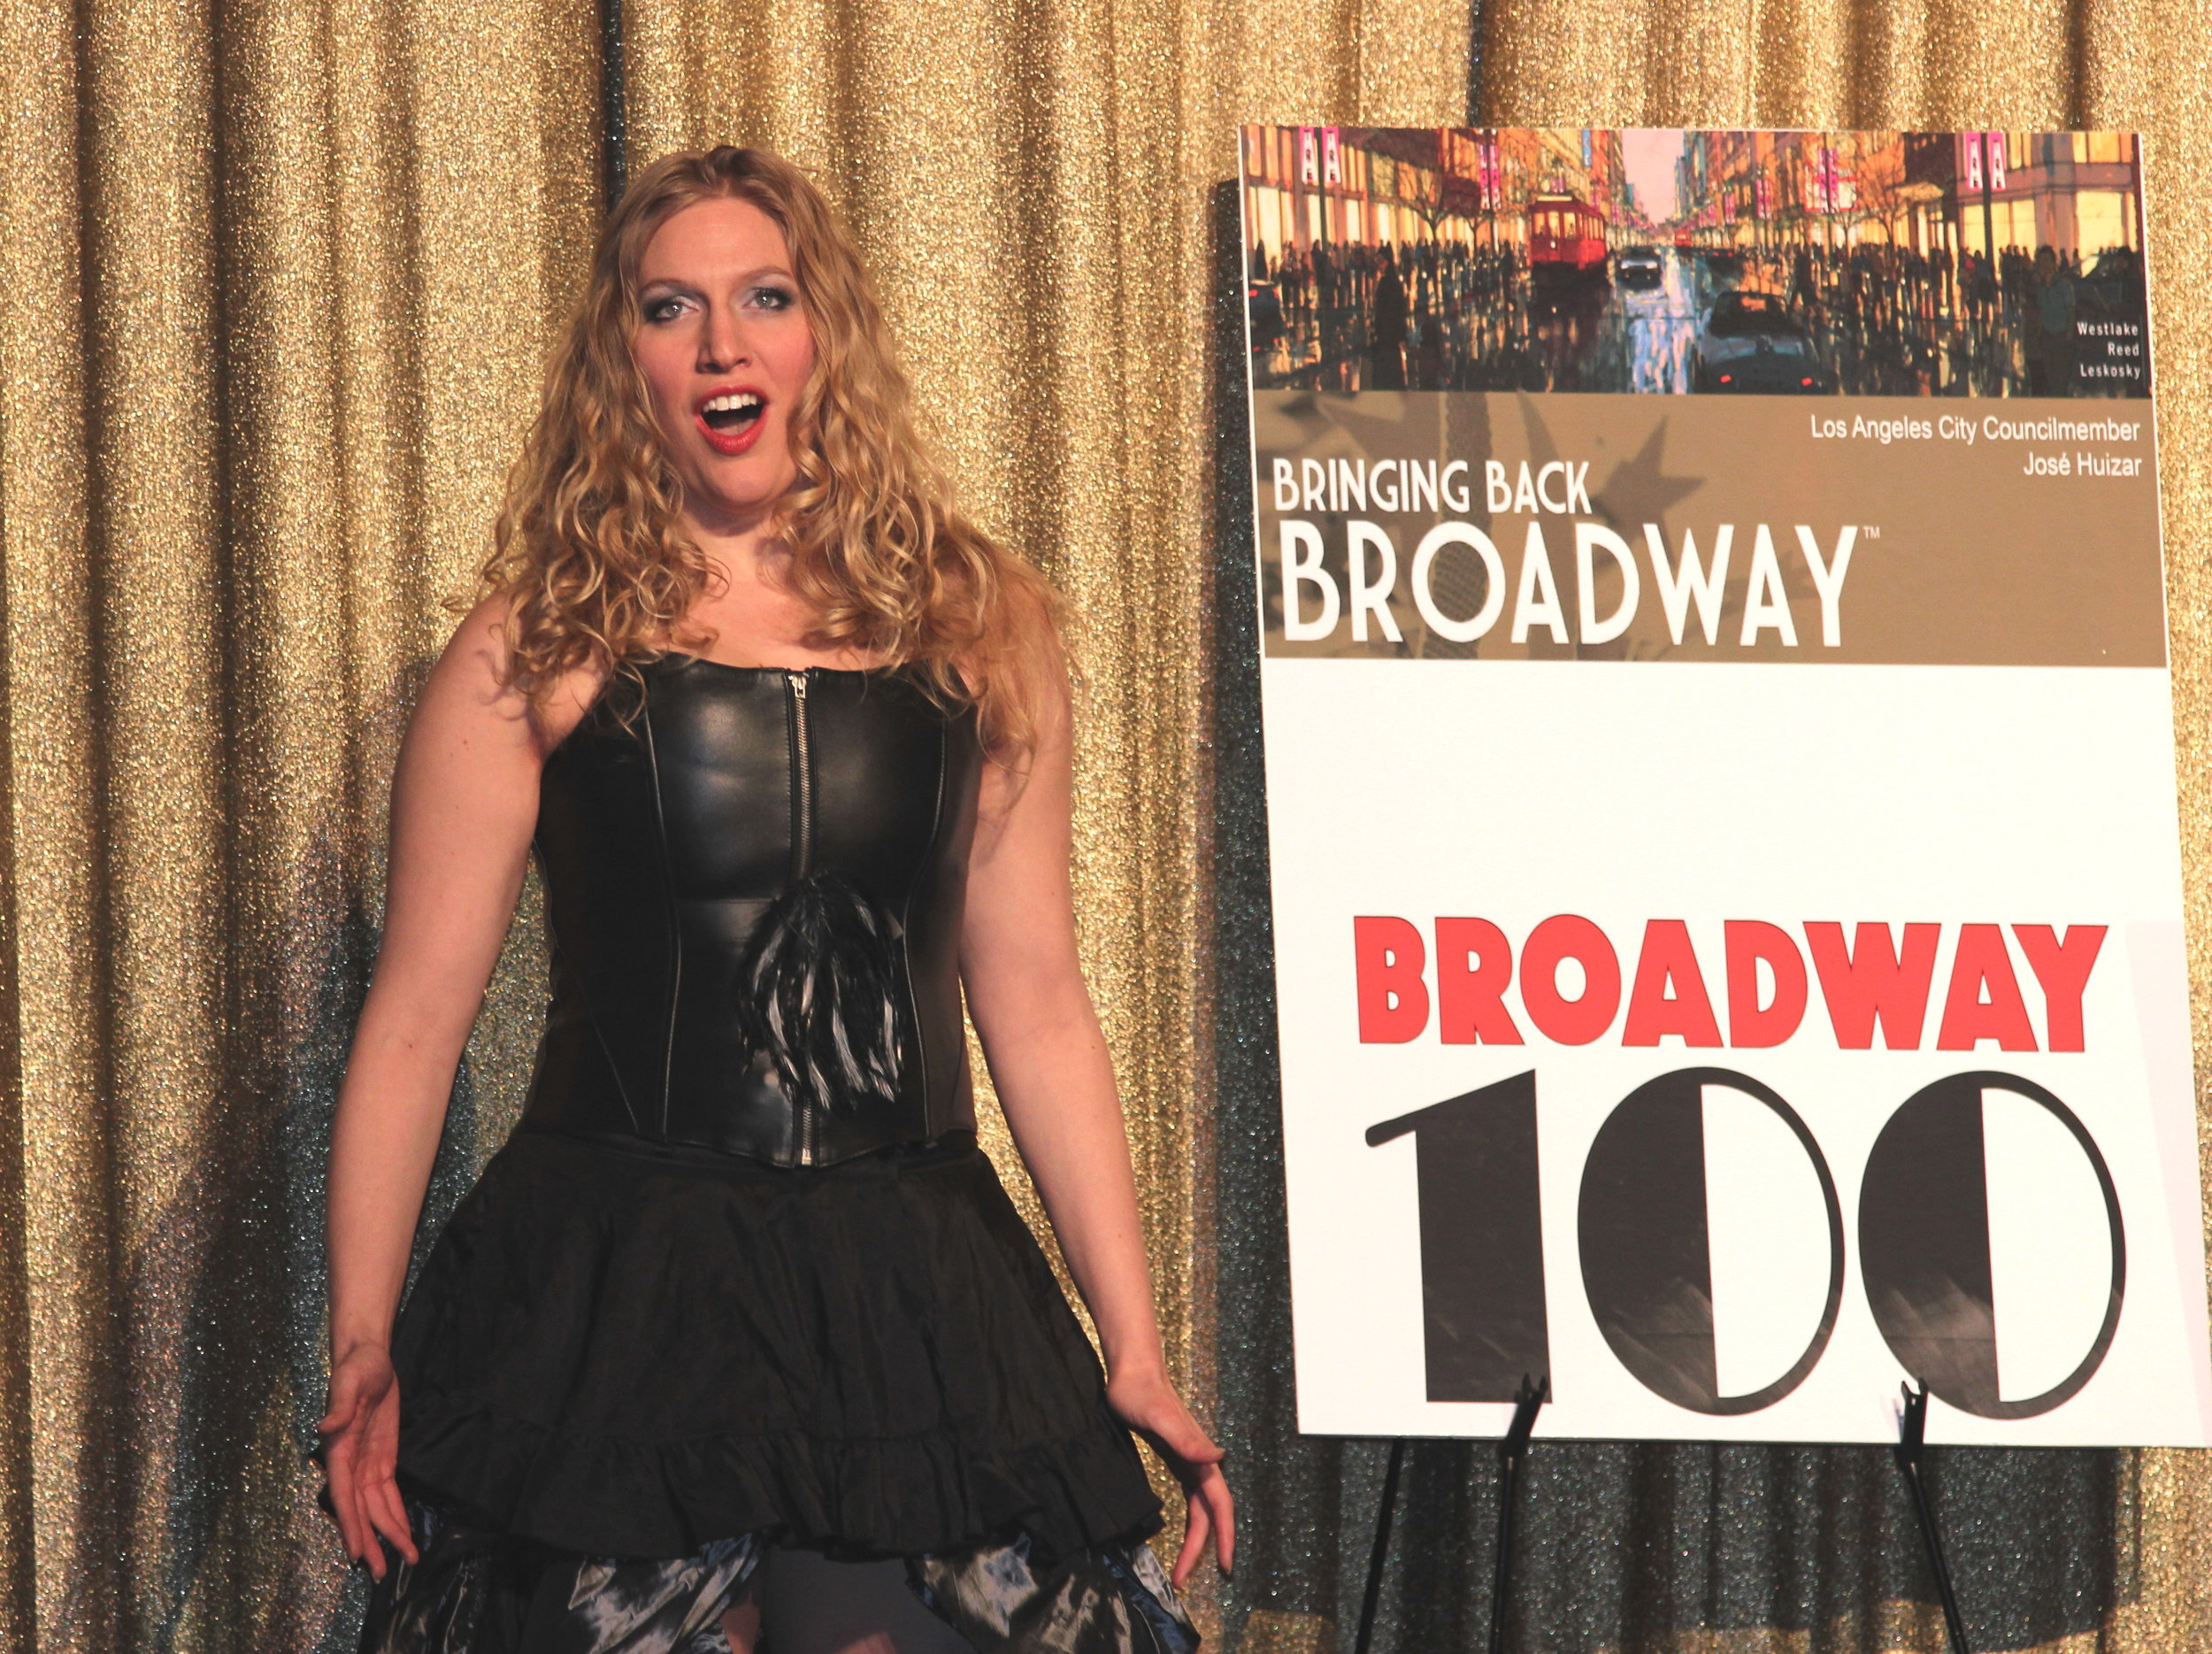 performance-bringing-back-broadway-dtla-theatrefication-broadway-100-bbb_5526693595_o.jpg